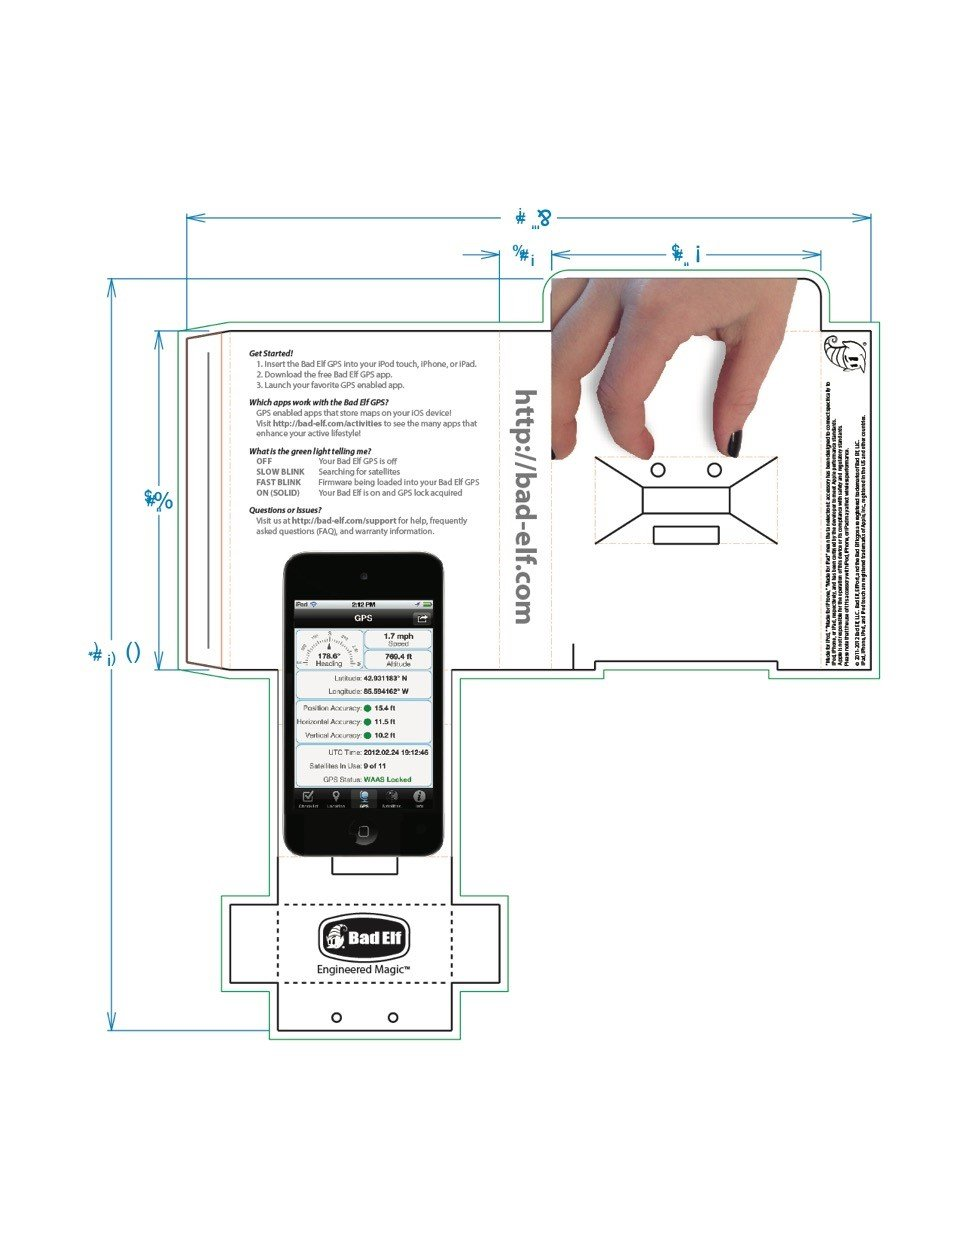 Bad Elf Gps For Dock Connector Ipad Iphone Or Ipod Touch 5 Wiring Diagram Cell Phones Accessories